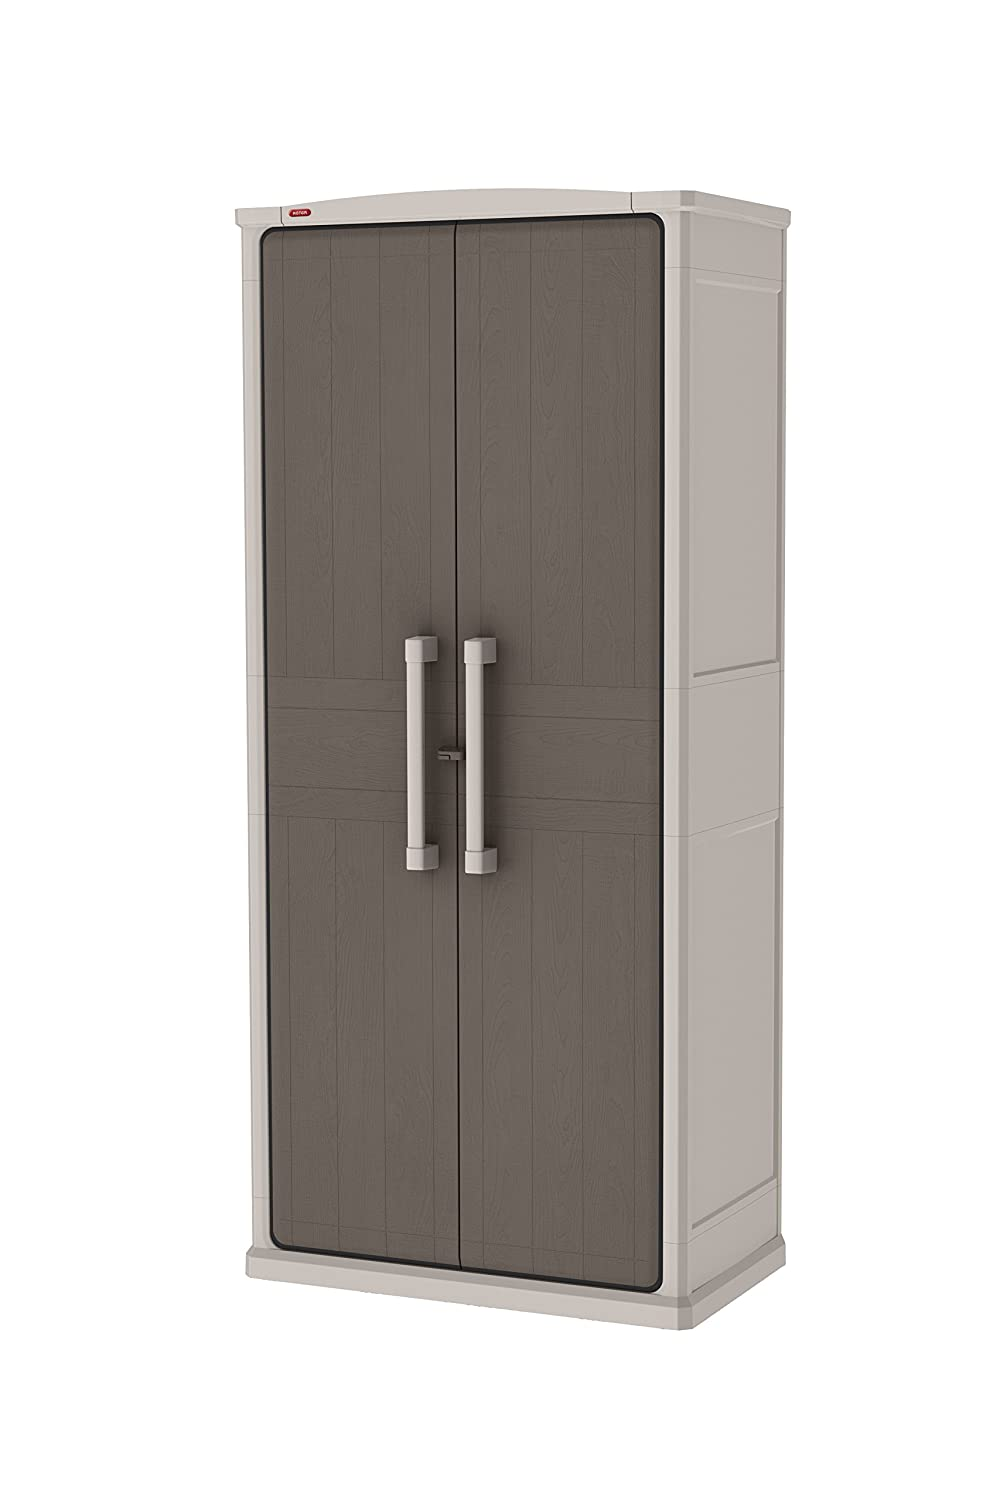 Keter Optima Wonder Outdoor 17200531- Armario para exteriores, de 47, 3 x 80, 5 x 177, 8 cm: Amazon.es: Jardín